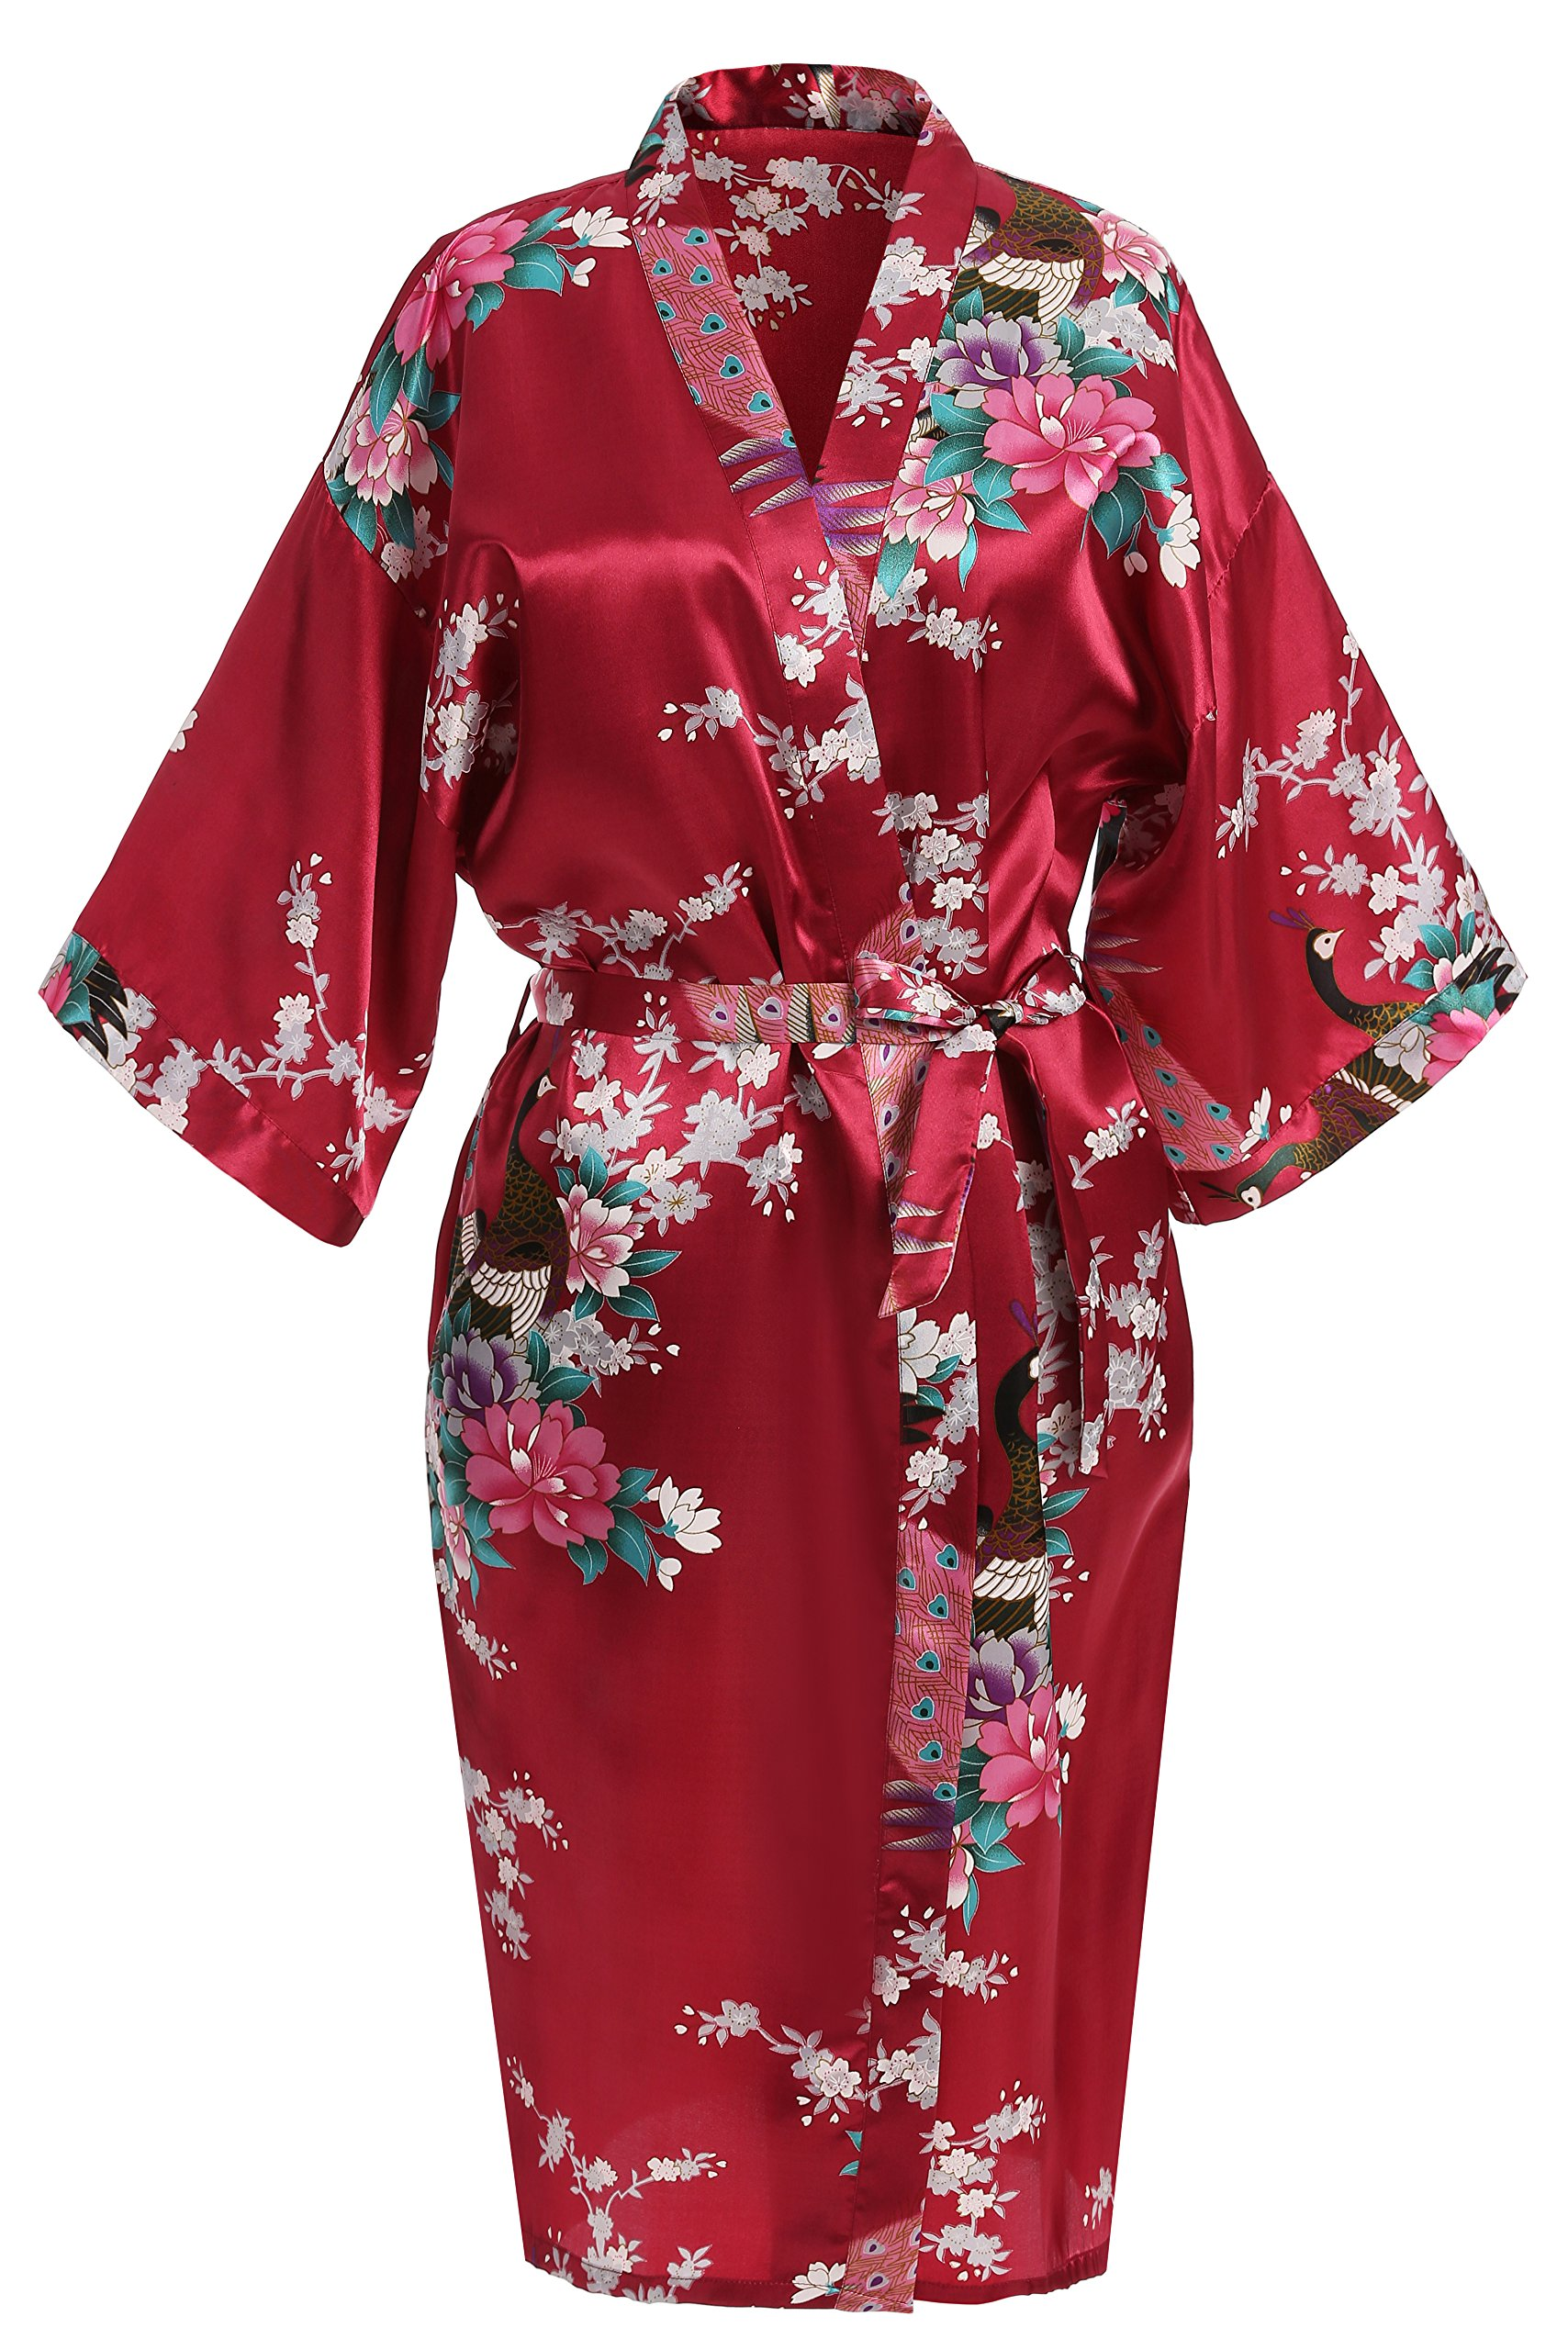 USDisc't Elegant Women's Kimono Robe for Parties Bridal and Bridesmaid Short (M, Red)